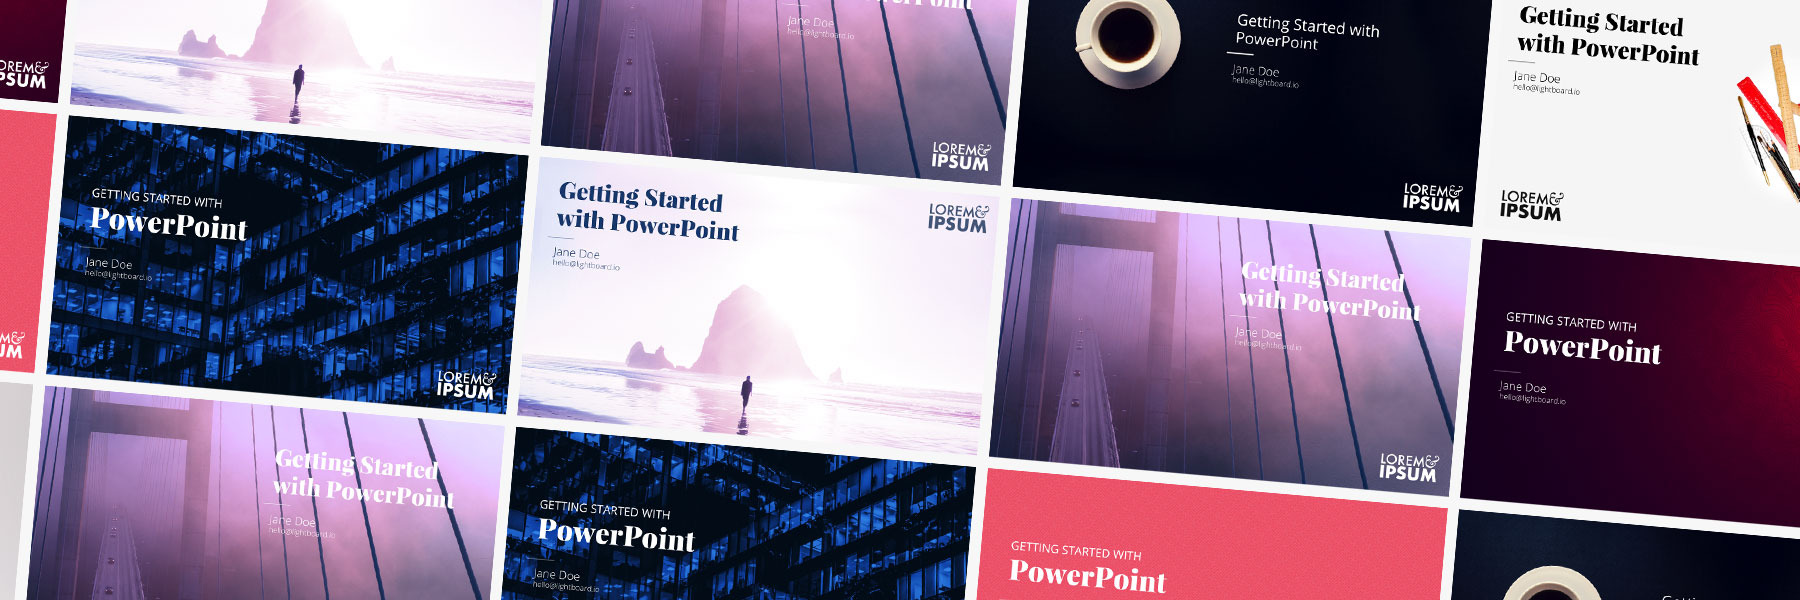 Powerpoint Presentation Cover Page Templates